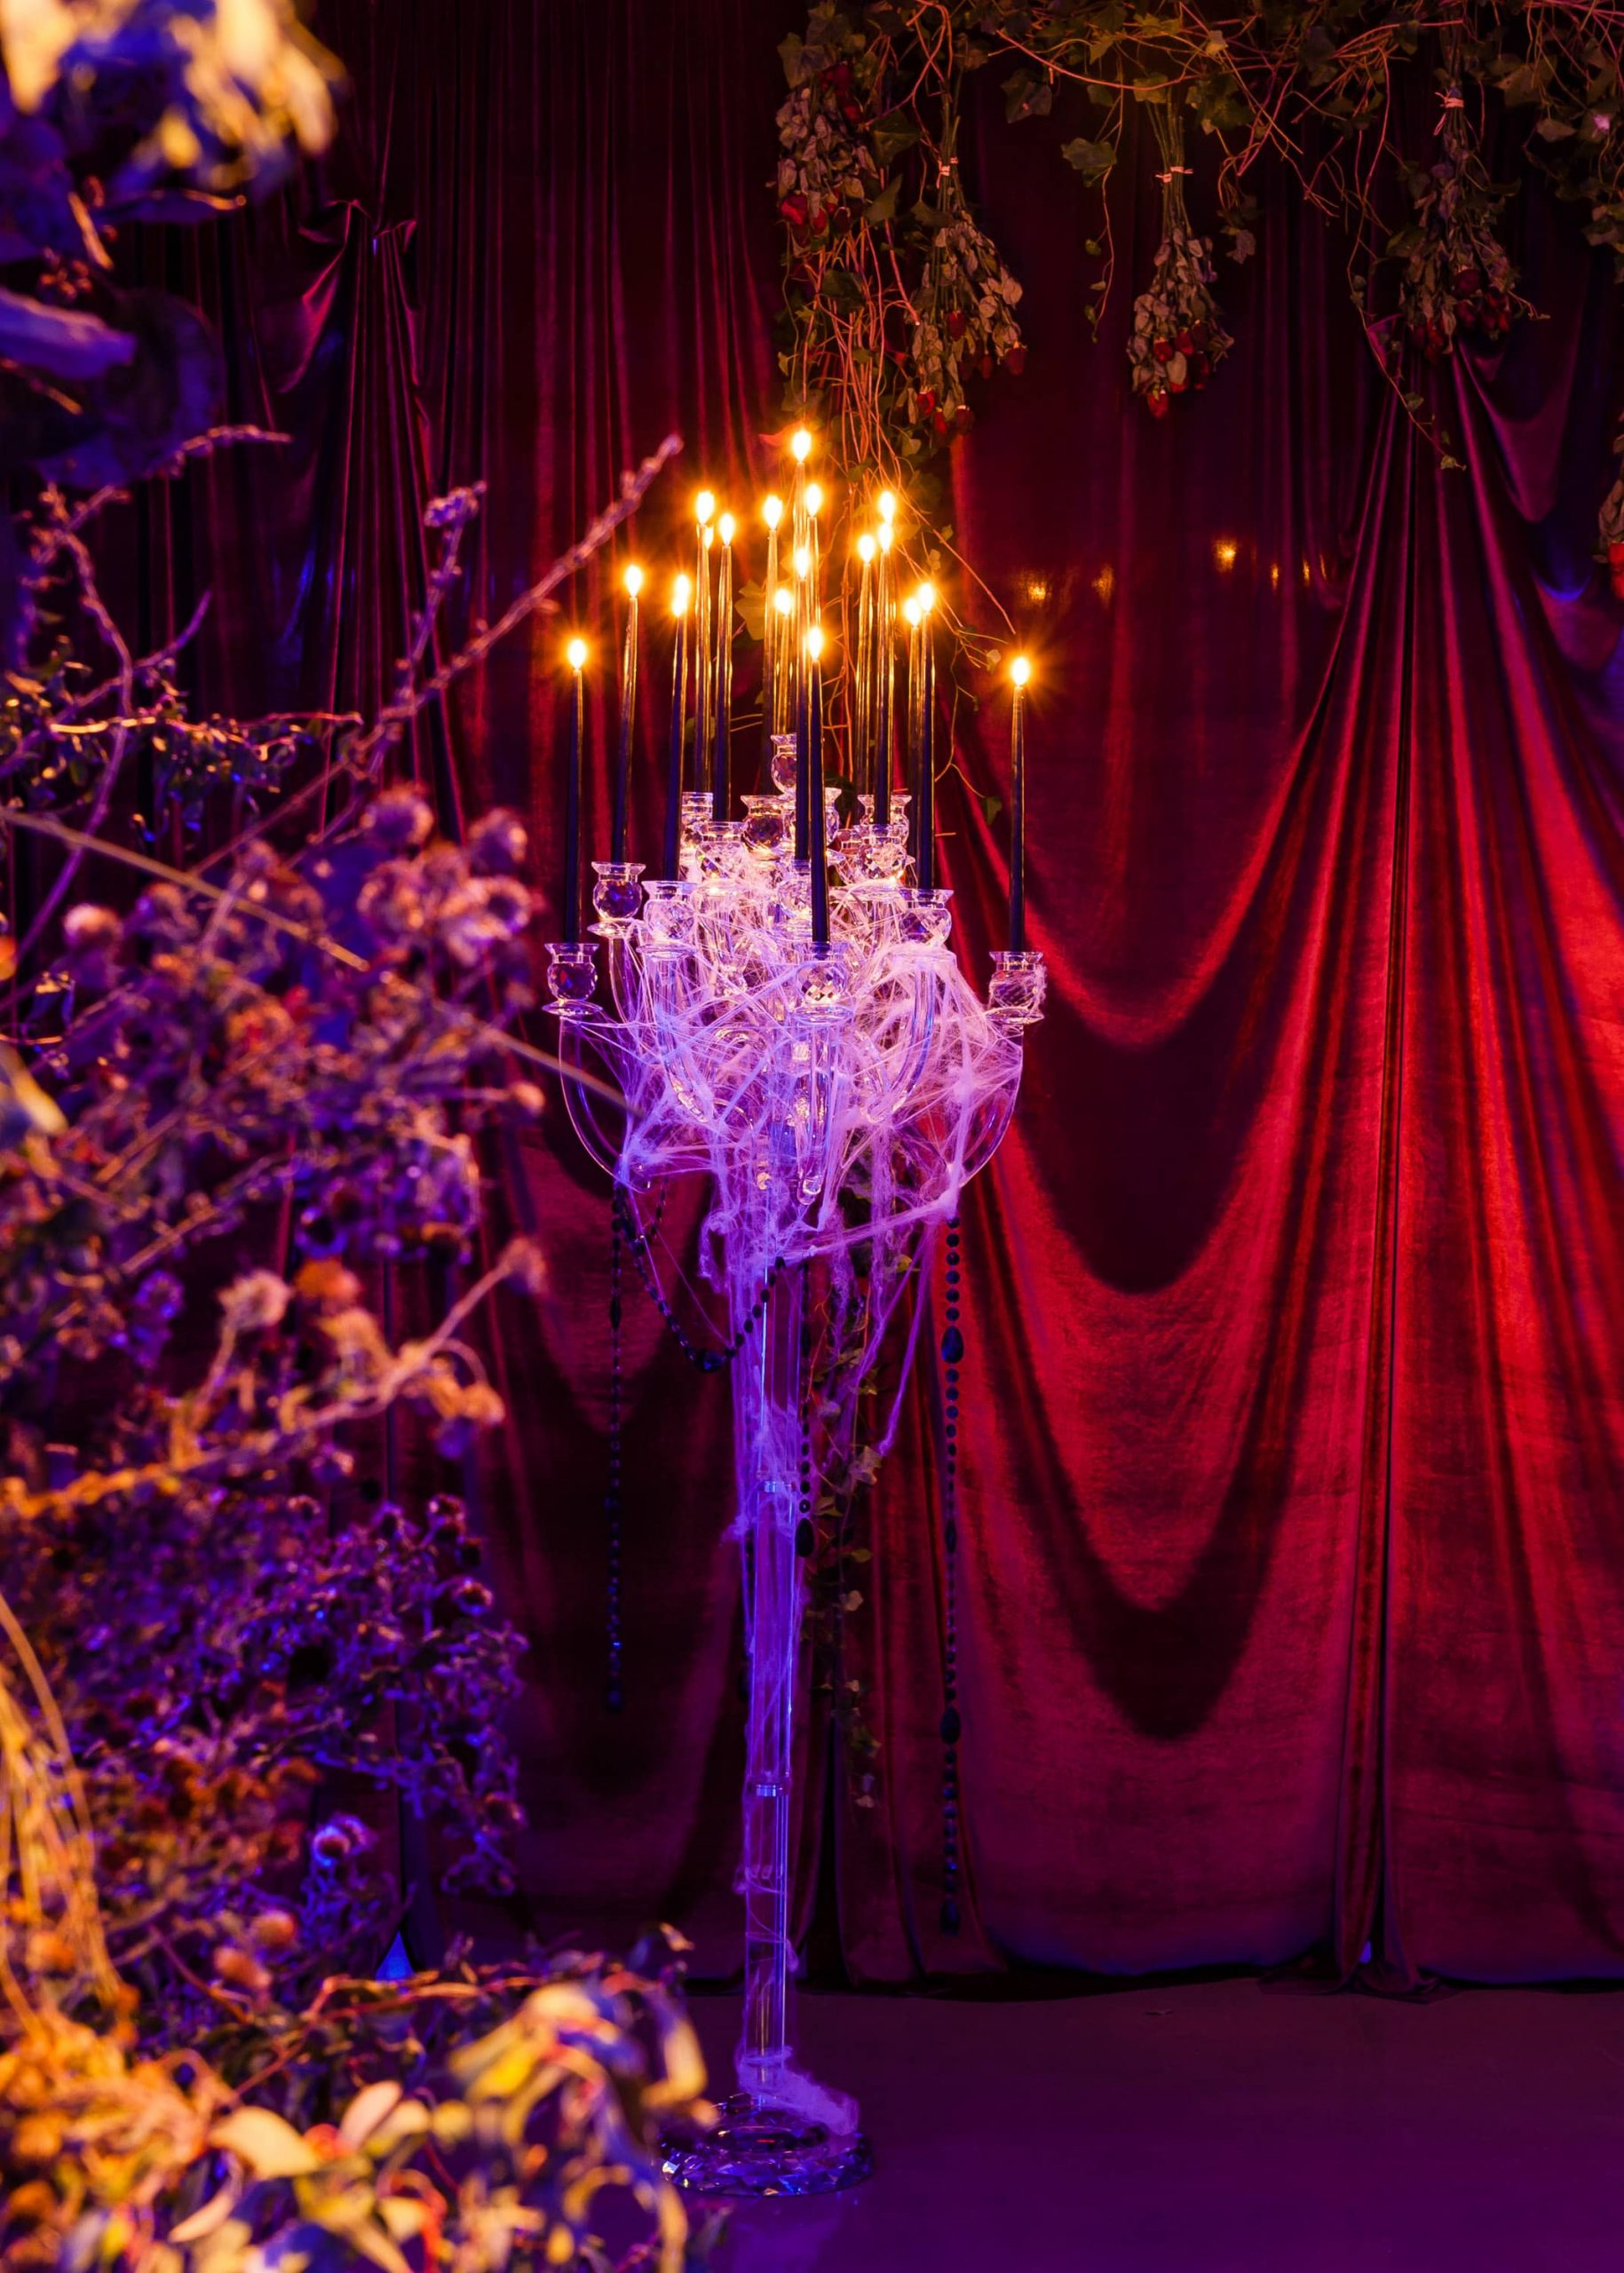 Spooky decor at this epic halloween party at The Standard in NYC | Photo by Gruber Photographers